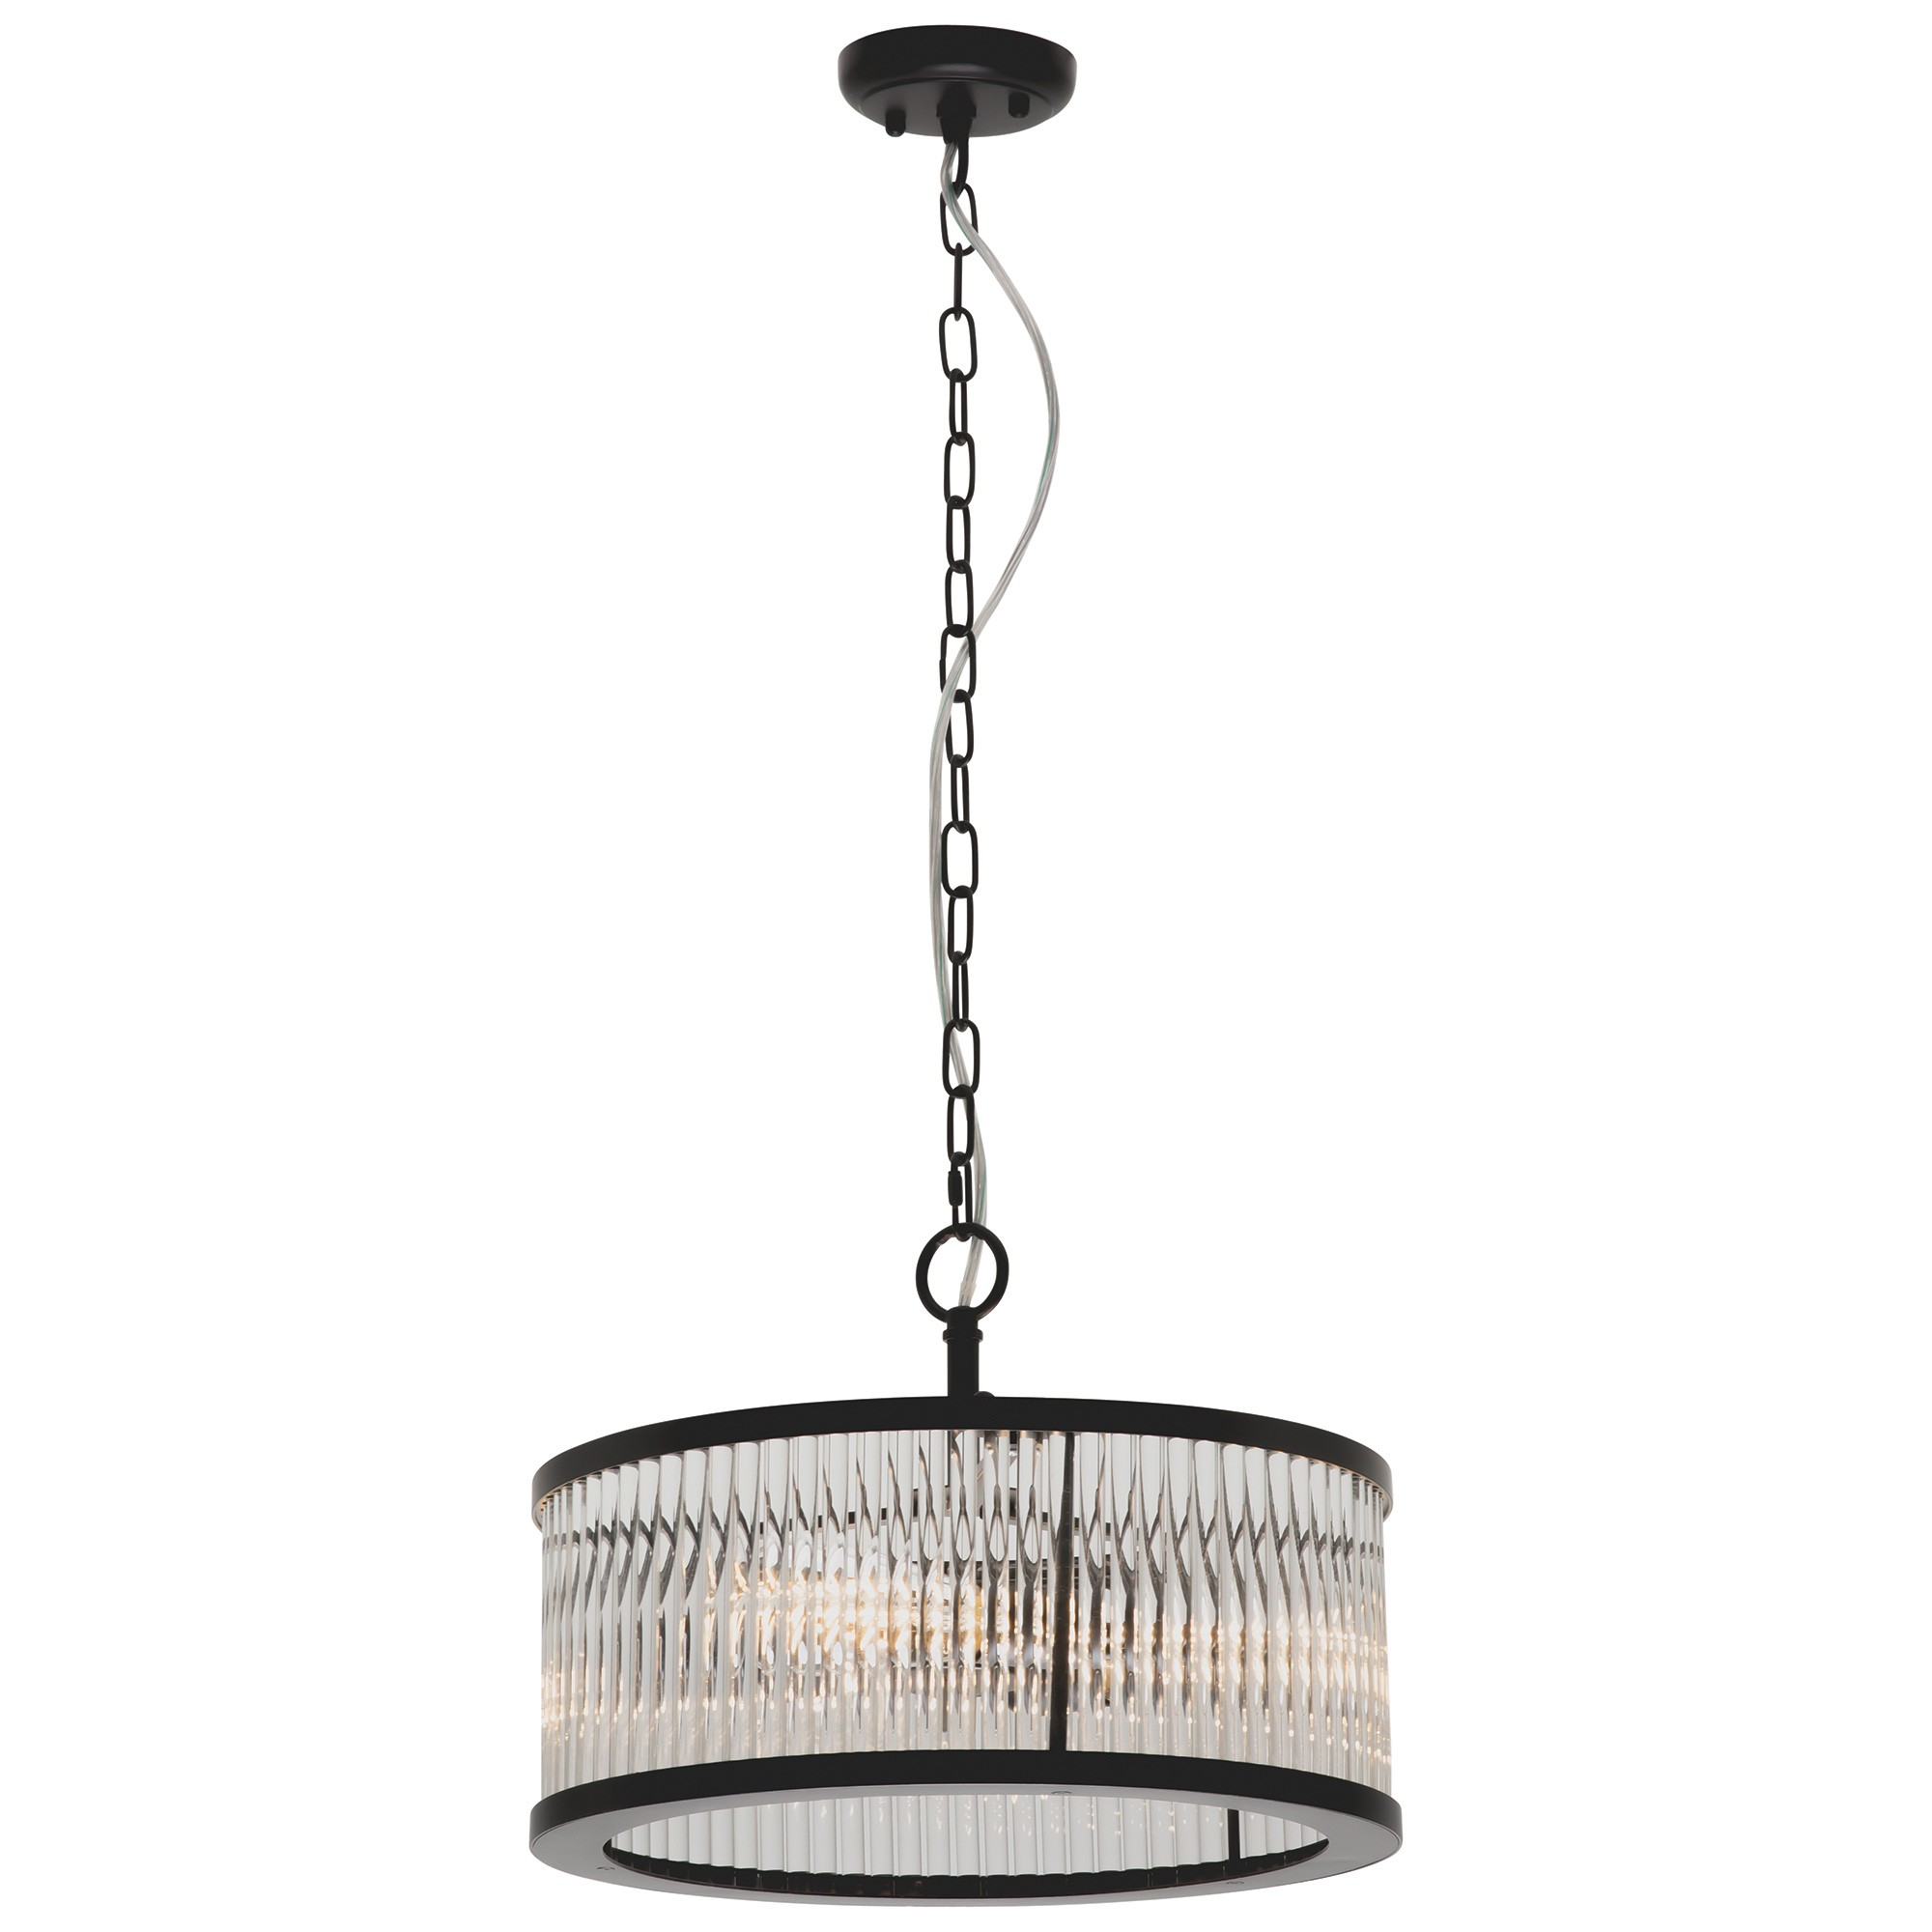 Canterbury Metal & Glass Round Pendant Light, 4 Light